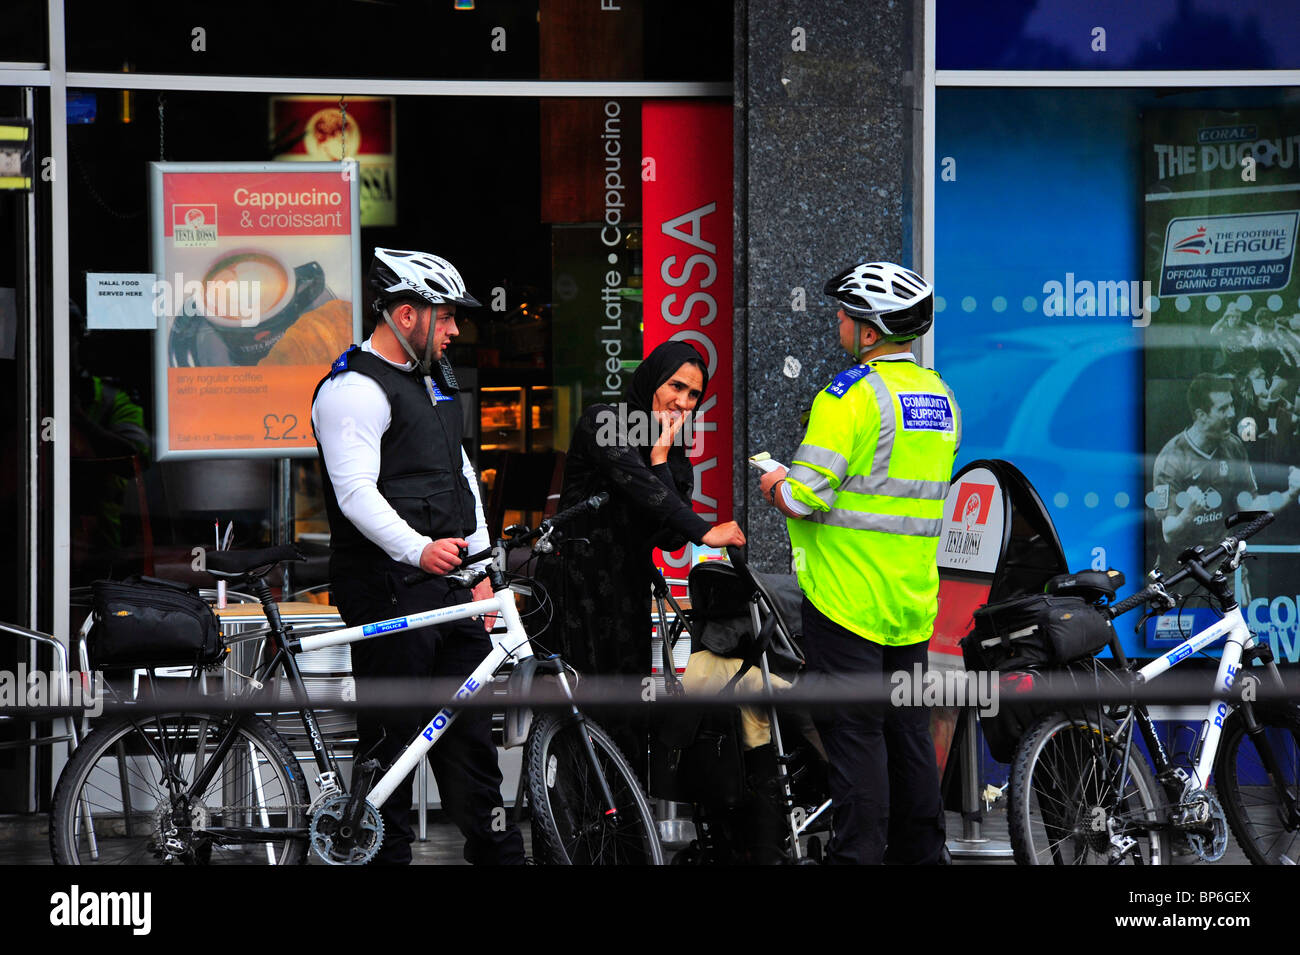 Police community Support Officers stopping a Muslim woman in London - Stock Image